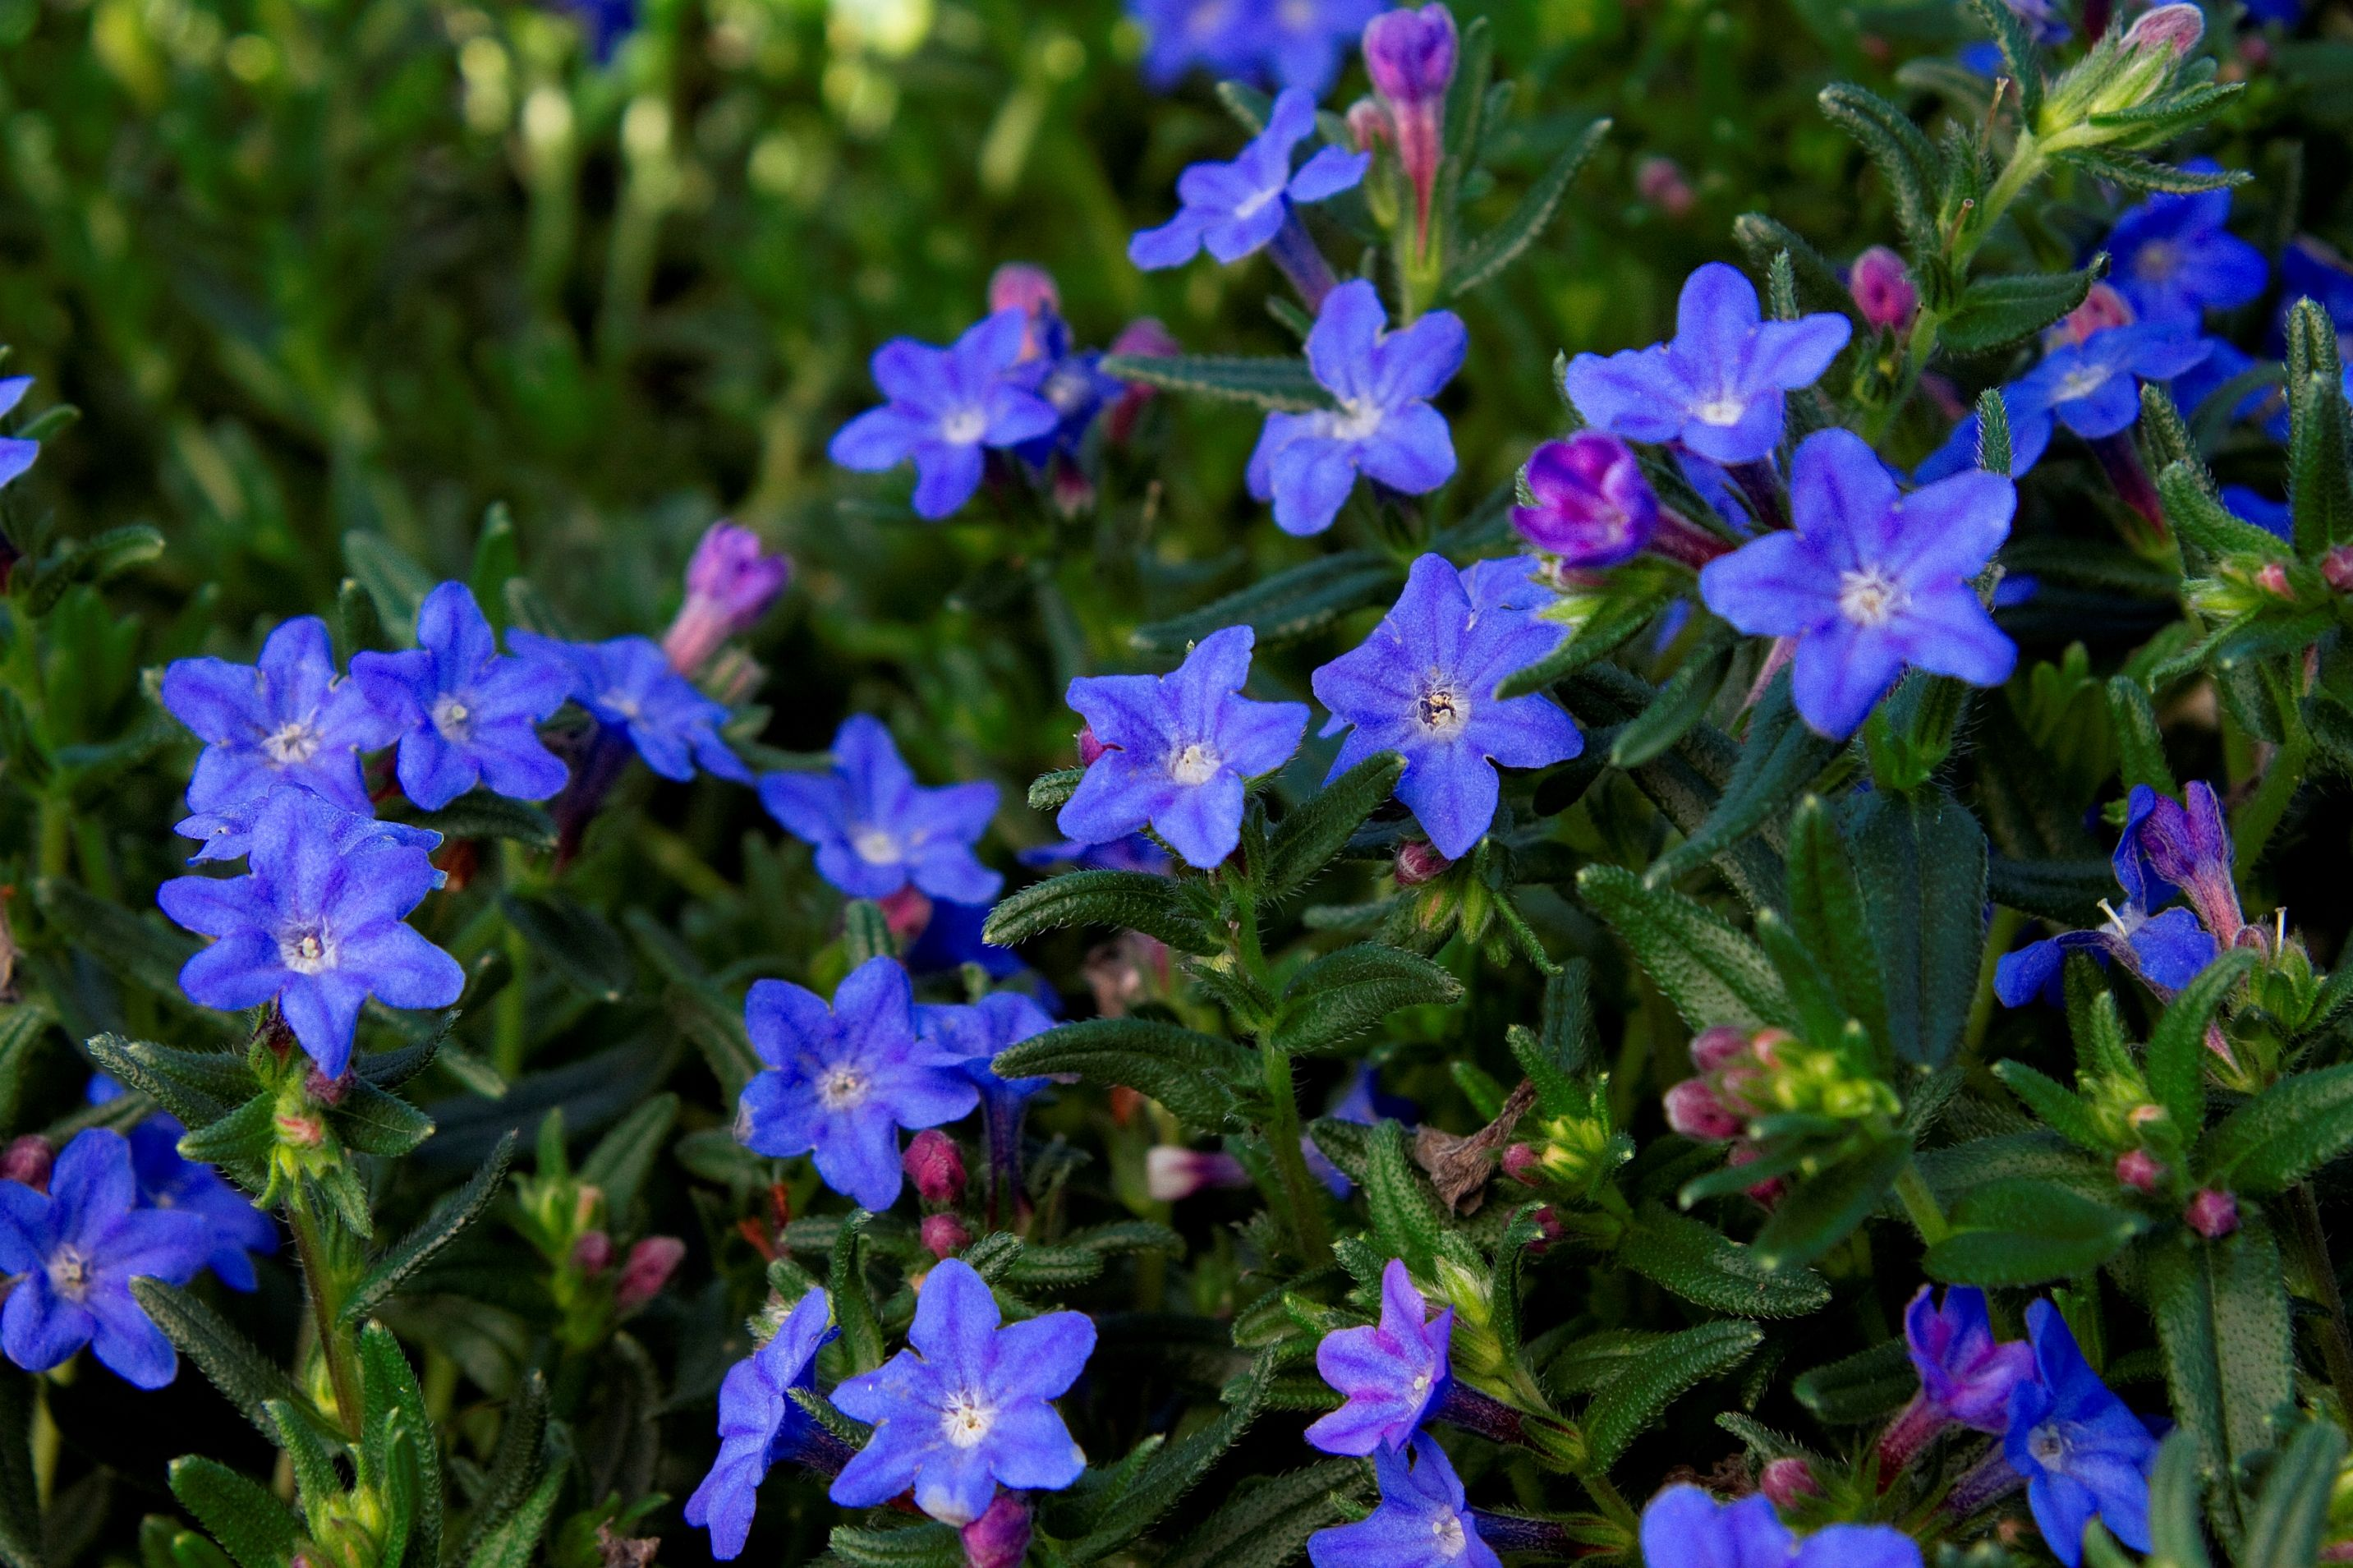 Grace ward lithodora beautiful deep blue flowers cover this grace ward lithodora beautiful deep blue flowers cover this wonderful evergreen groundcover or rock garden accent sprawling with a slightly mounded form izmirmasajfo